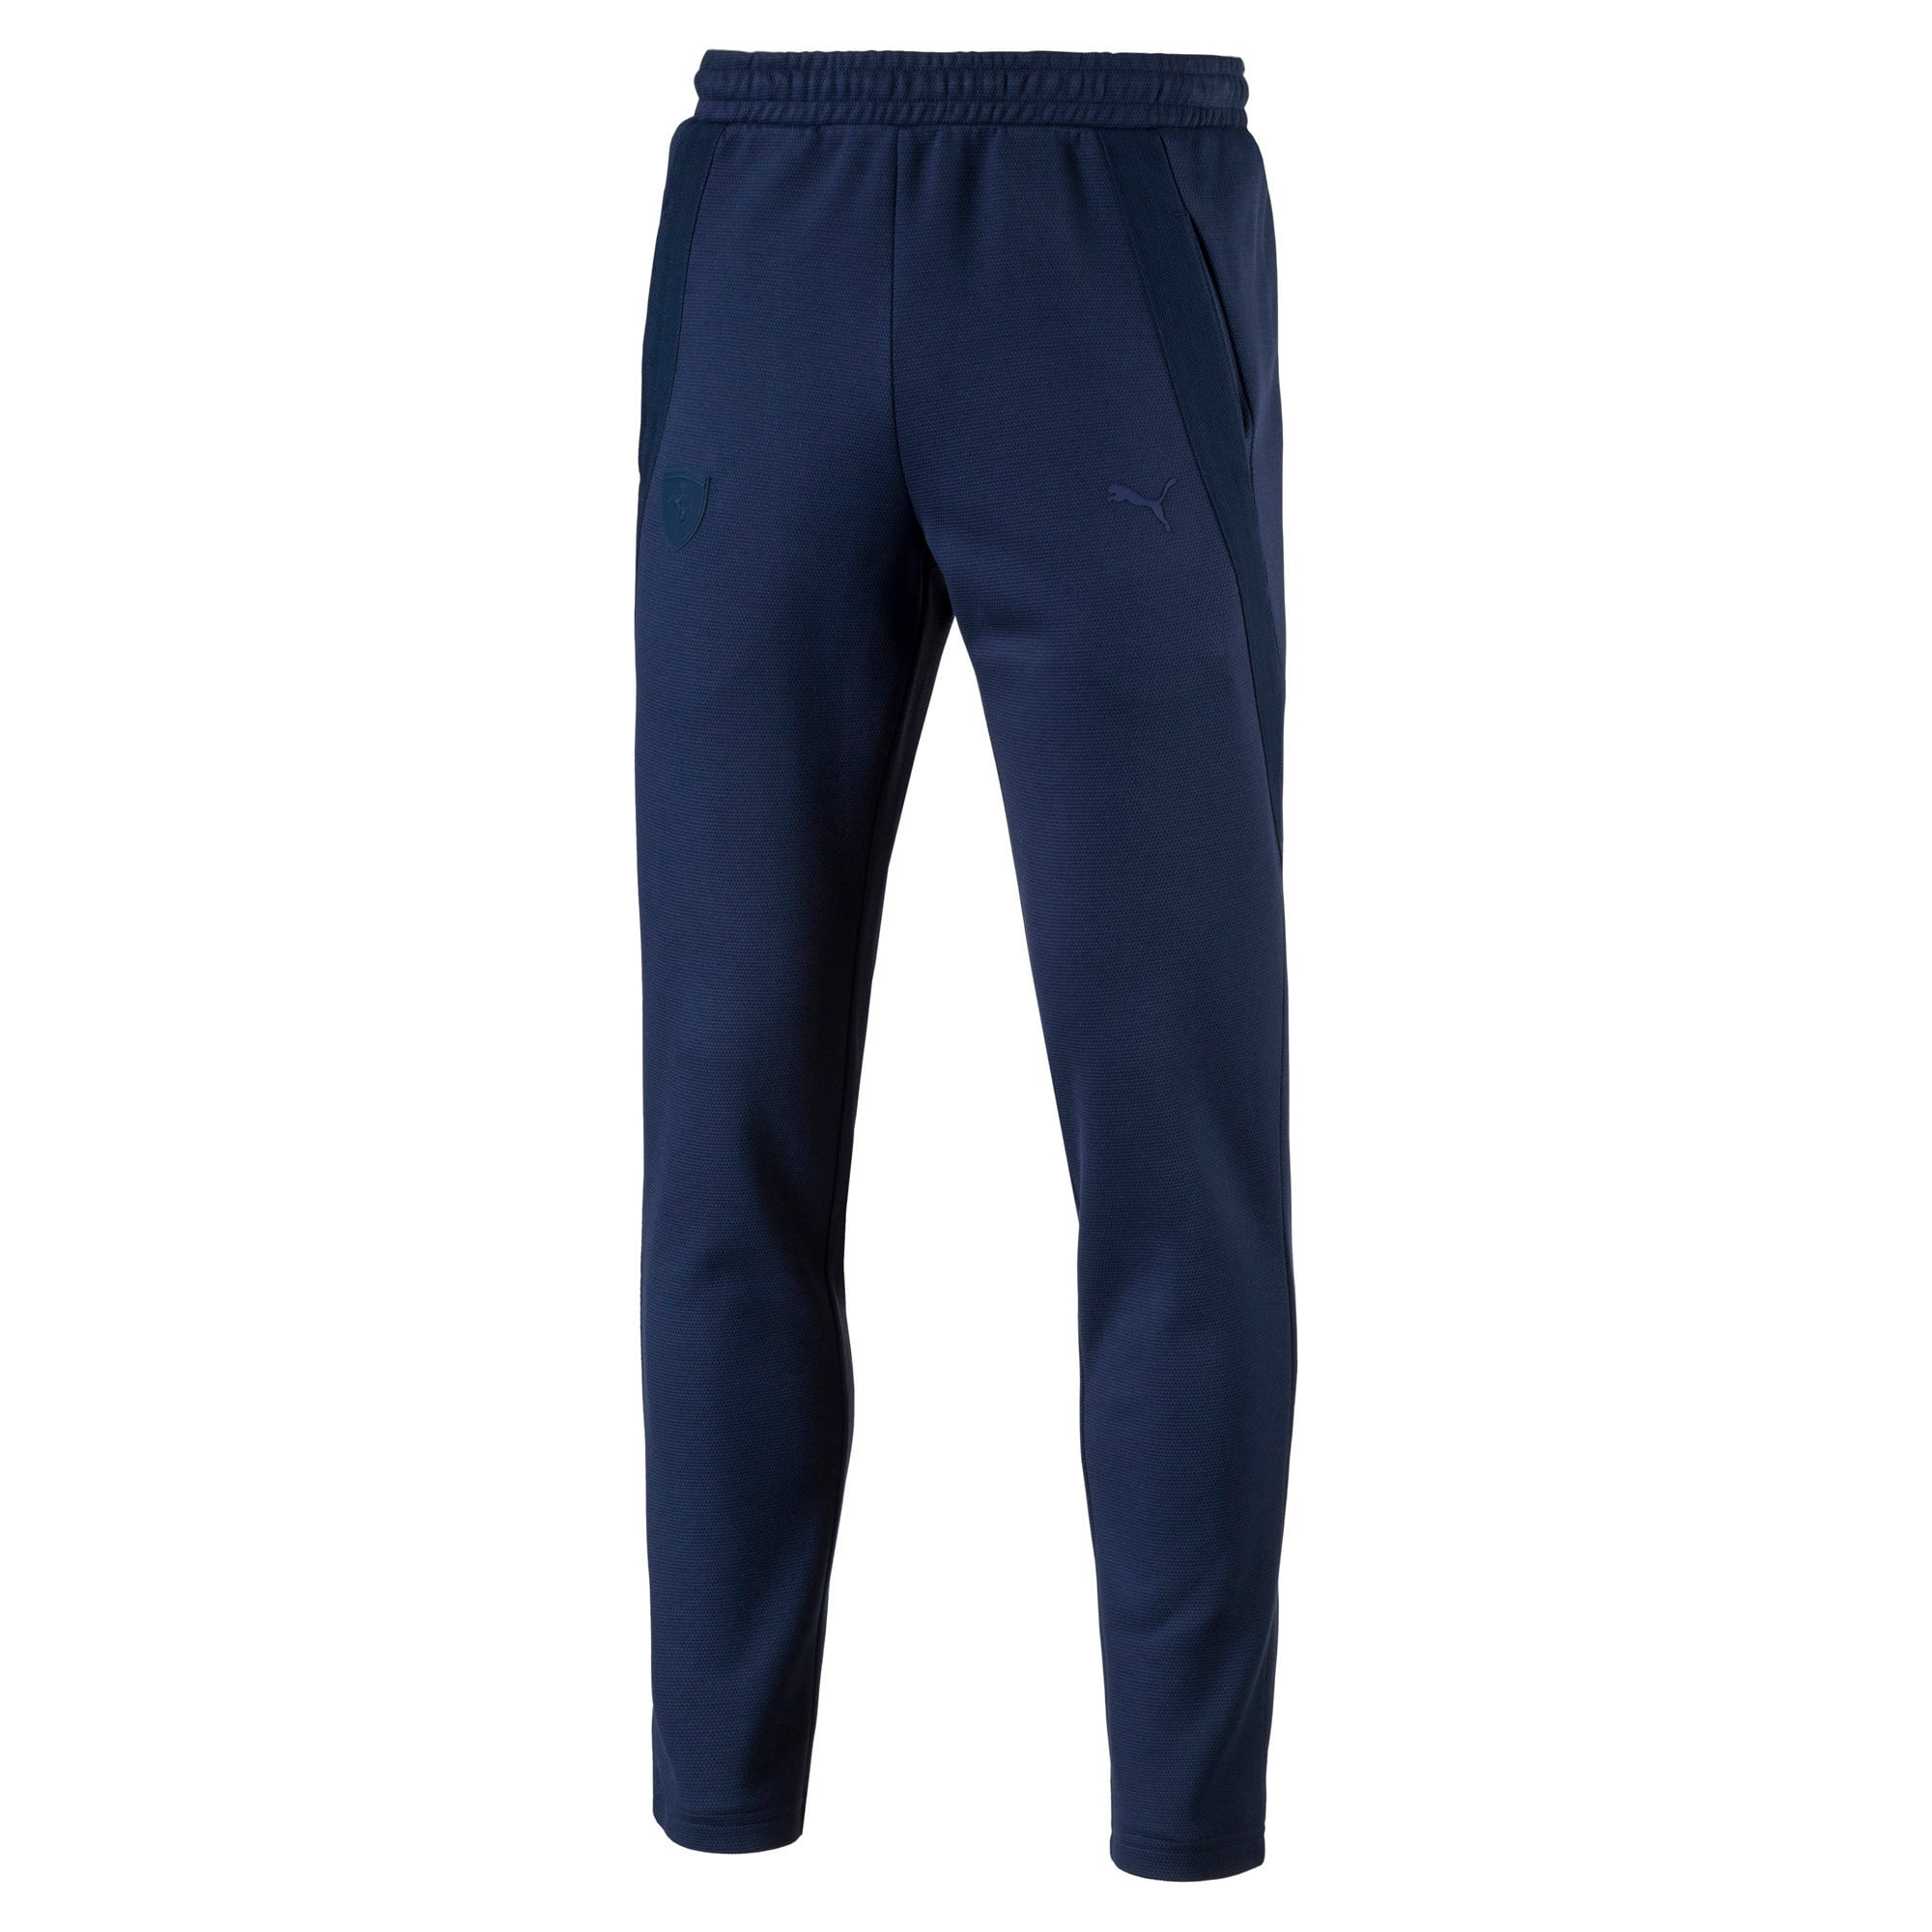 Thumbnail 1 of Ferrari Lifestyle Men's Sweatpants, Sargasso Sea, medium-IND